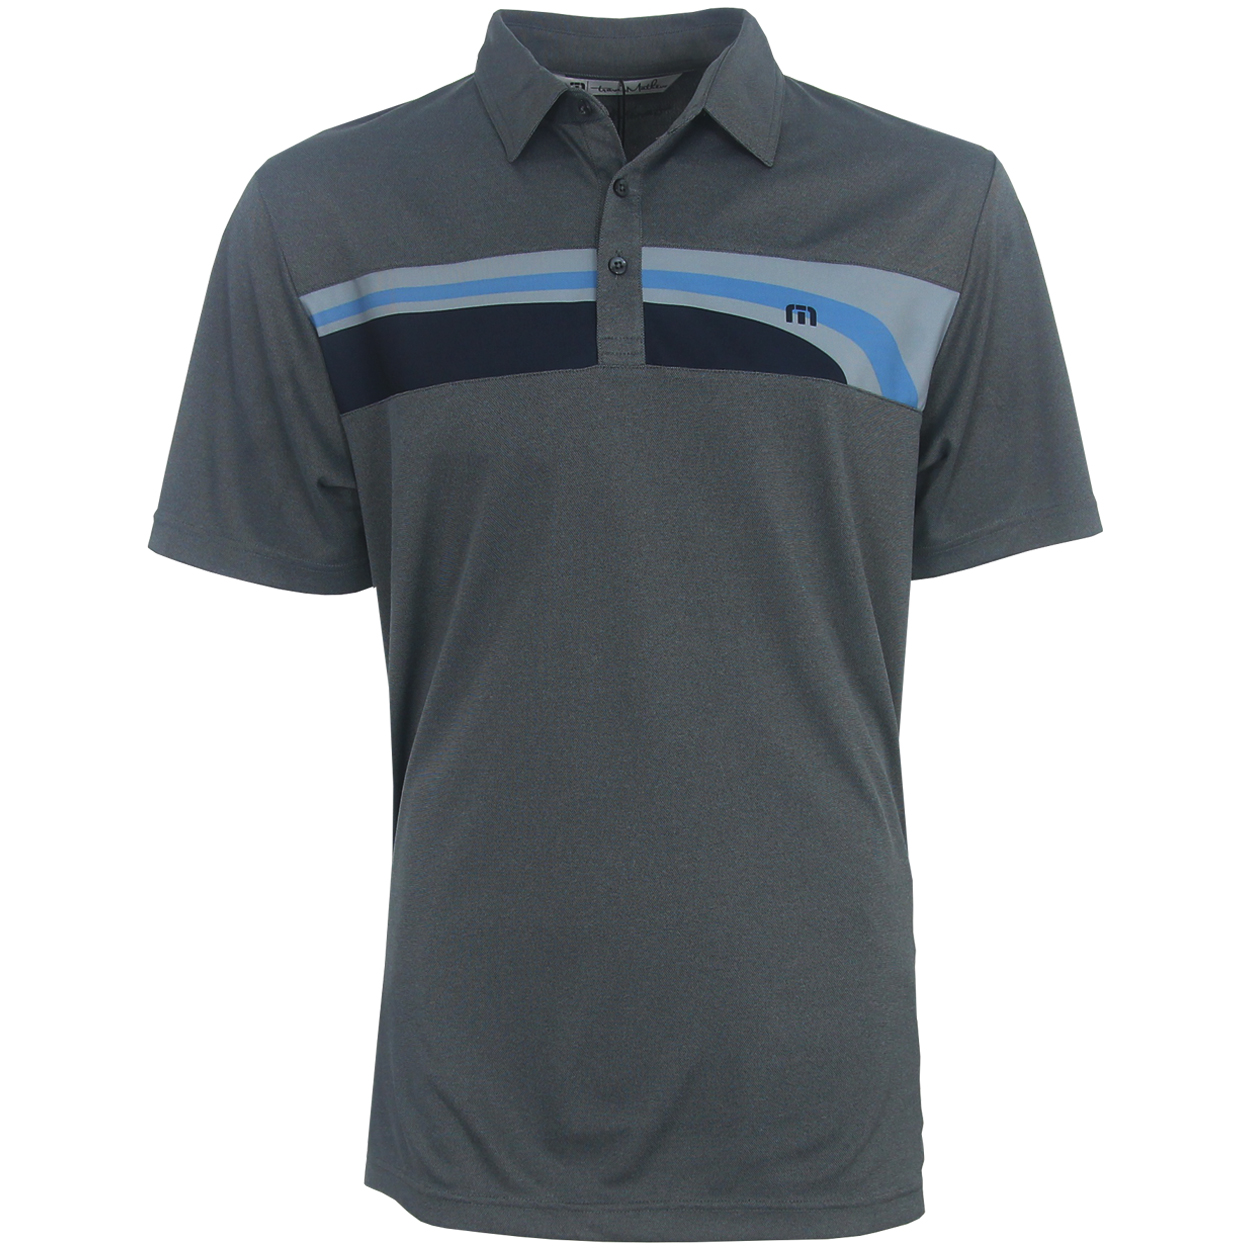 Shop Hurricane Golf for discount golf apparel for men and women at closeout prices, including Adidas PUMA Golf, Ashworth and more. Shop online today!